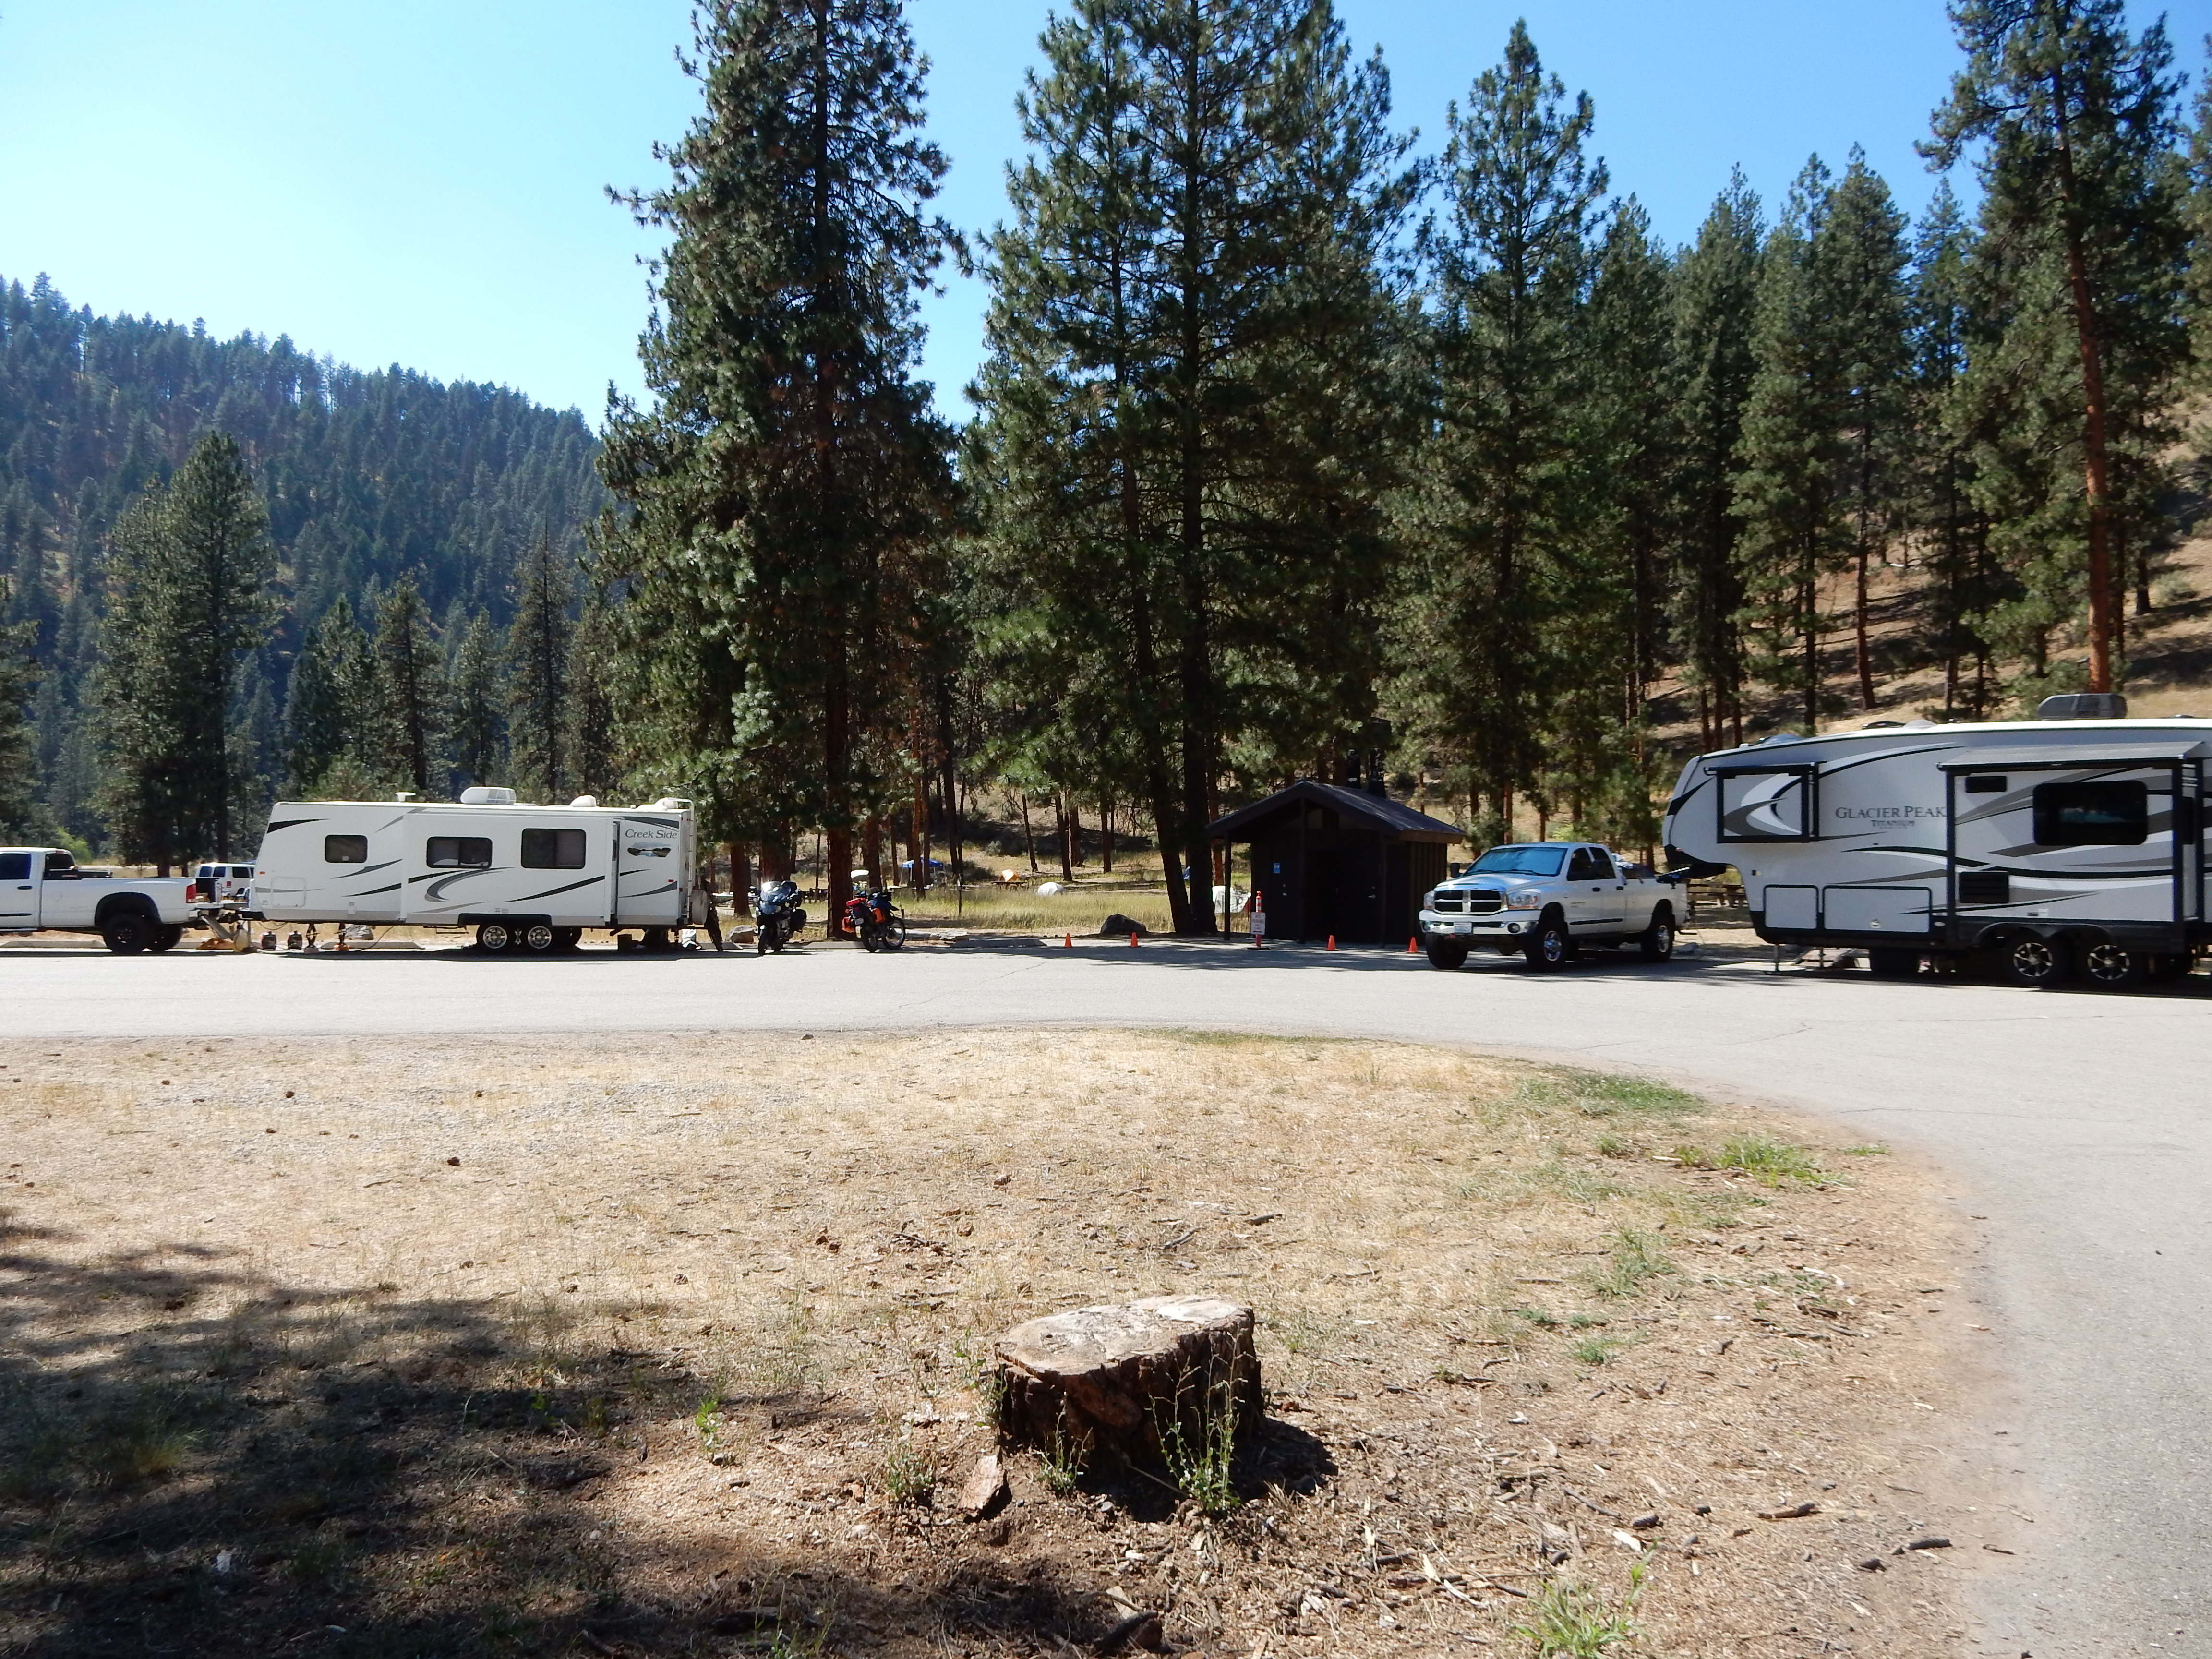 The Hot Springs campground in the Boise National Forest.The Hot Springs campground in the Boise National Forest.